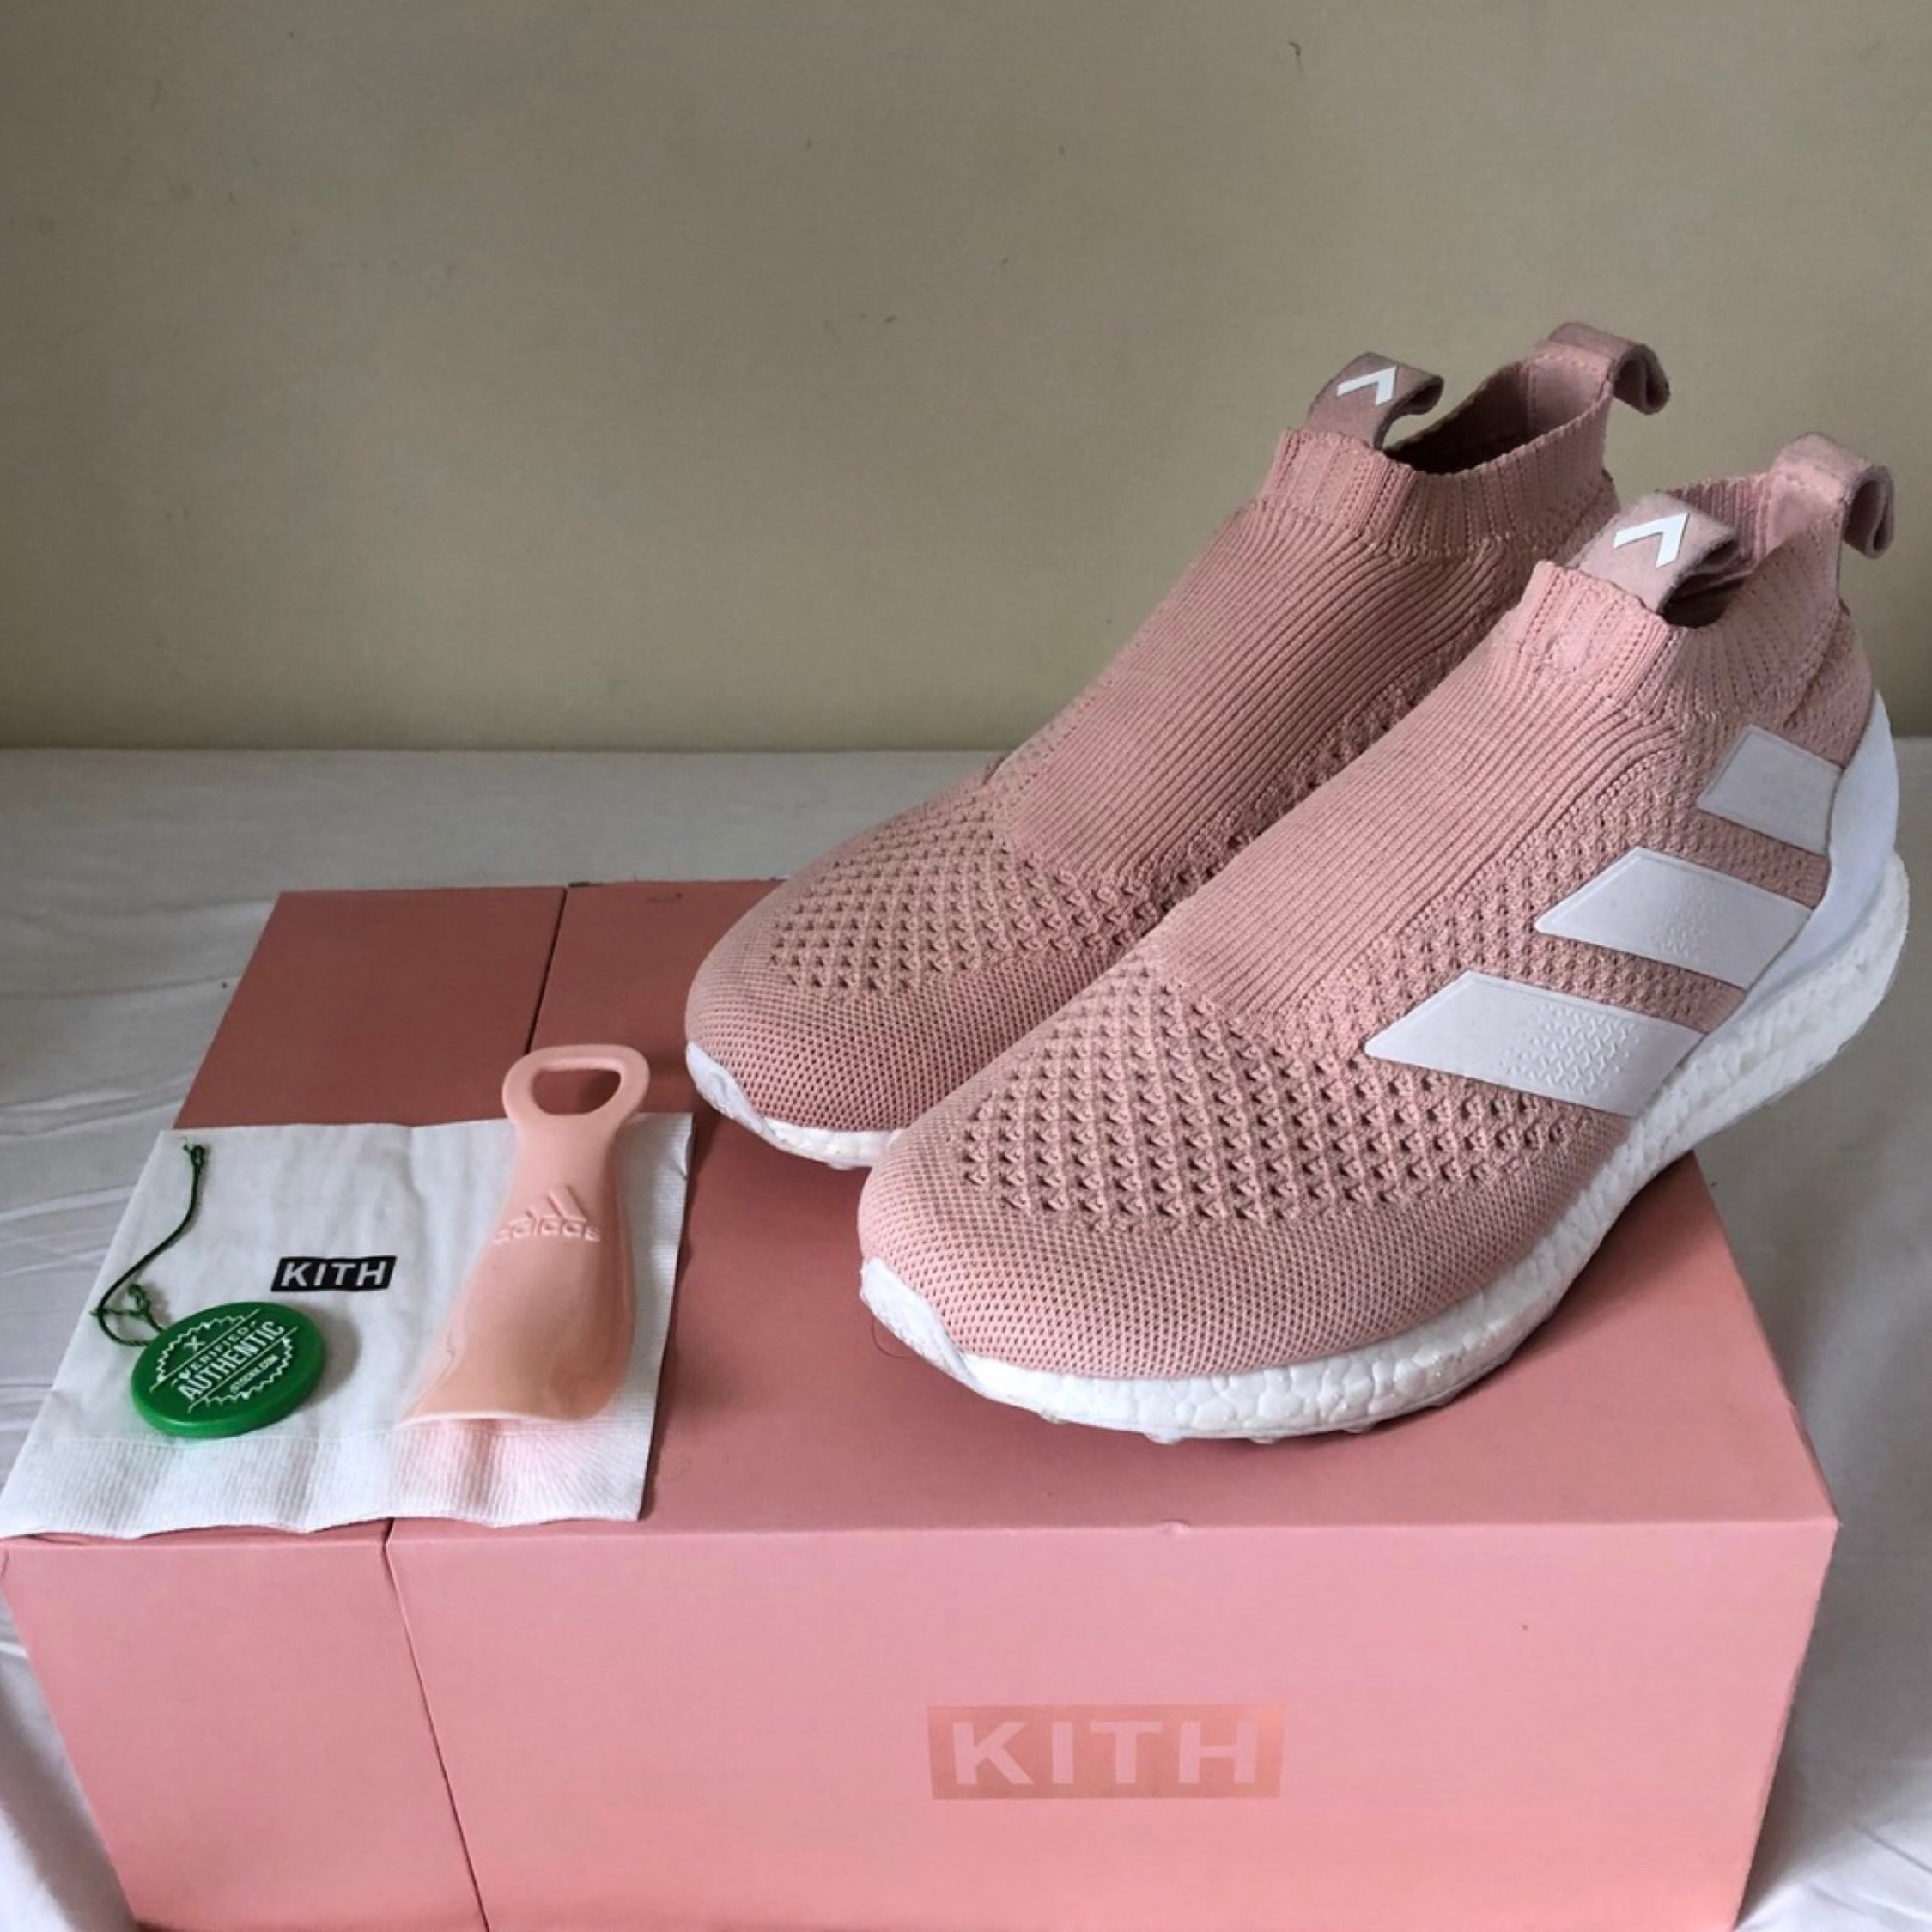 on sale 3f8e8 662bf Kith X Adidas Ace 16 Ultra Boost Uk7.5